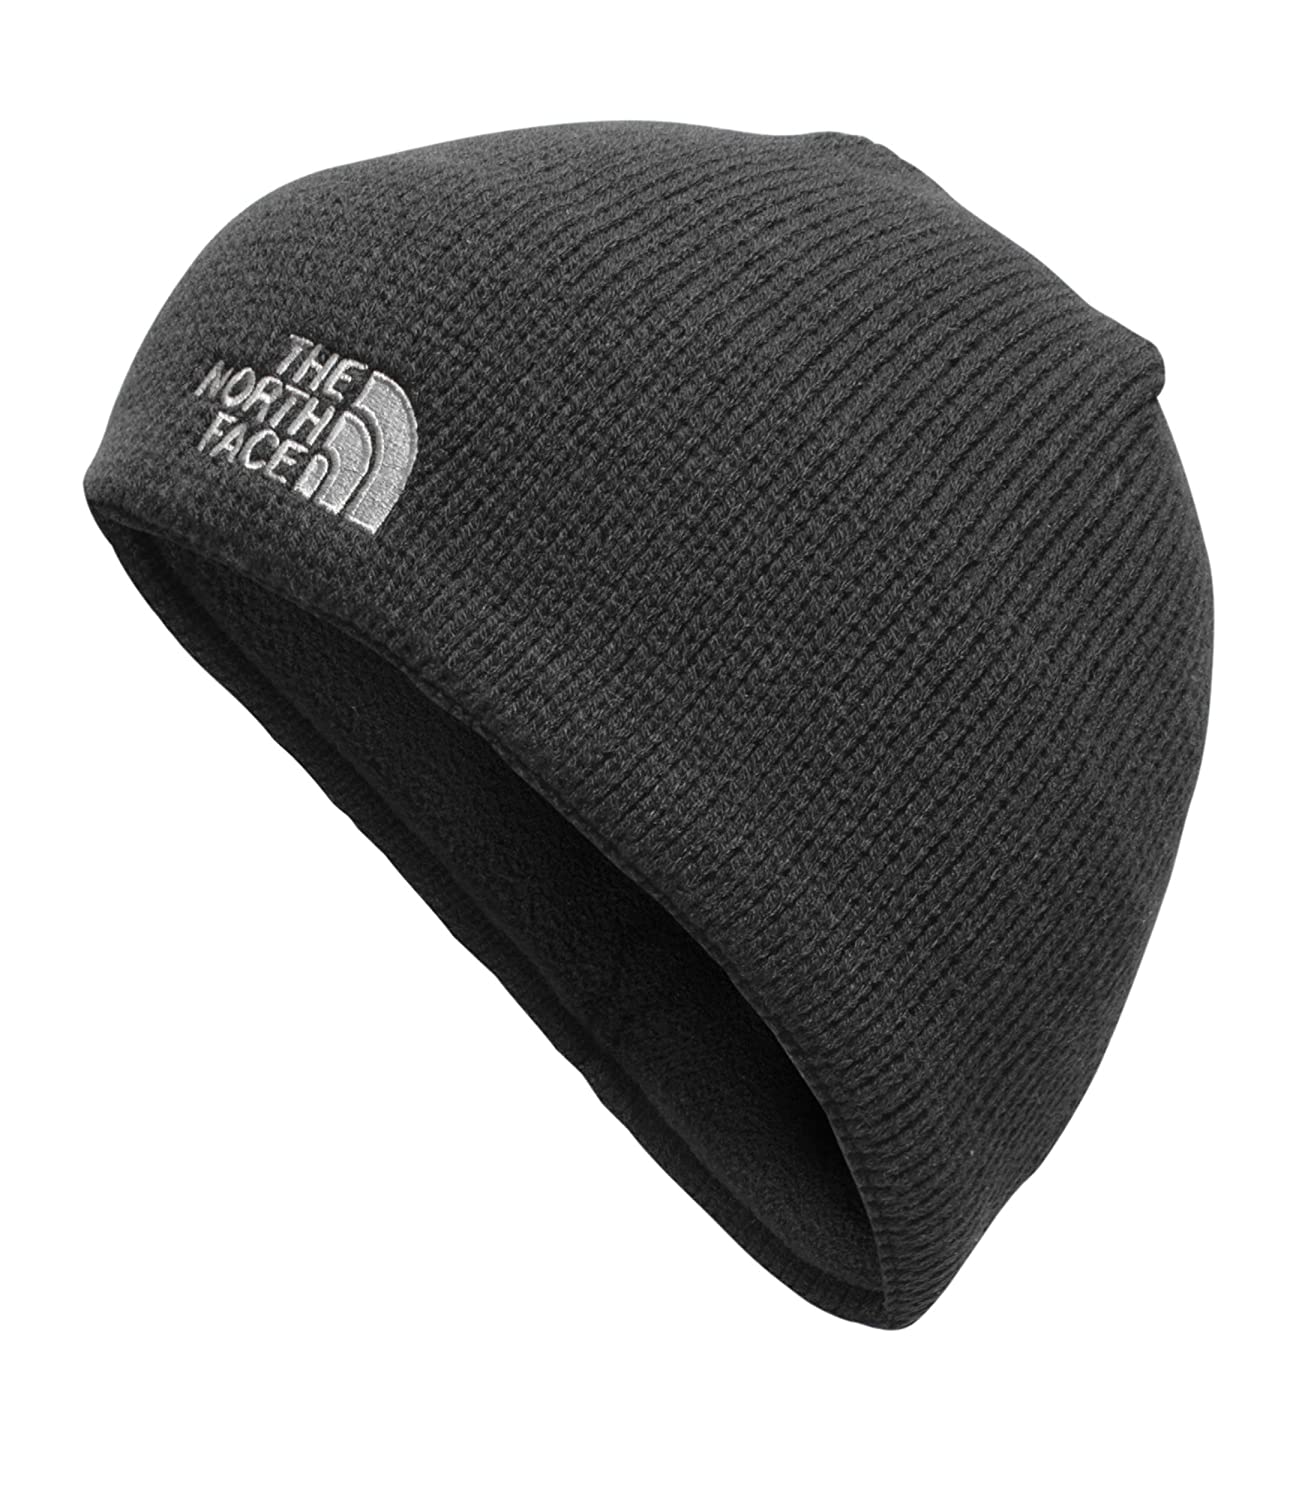 Amazon.com  The North Face Unisex Bones Beanie Asphalt Grey One Size  The  North Face  Clothing 3d46cc87c28